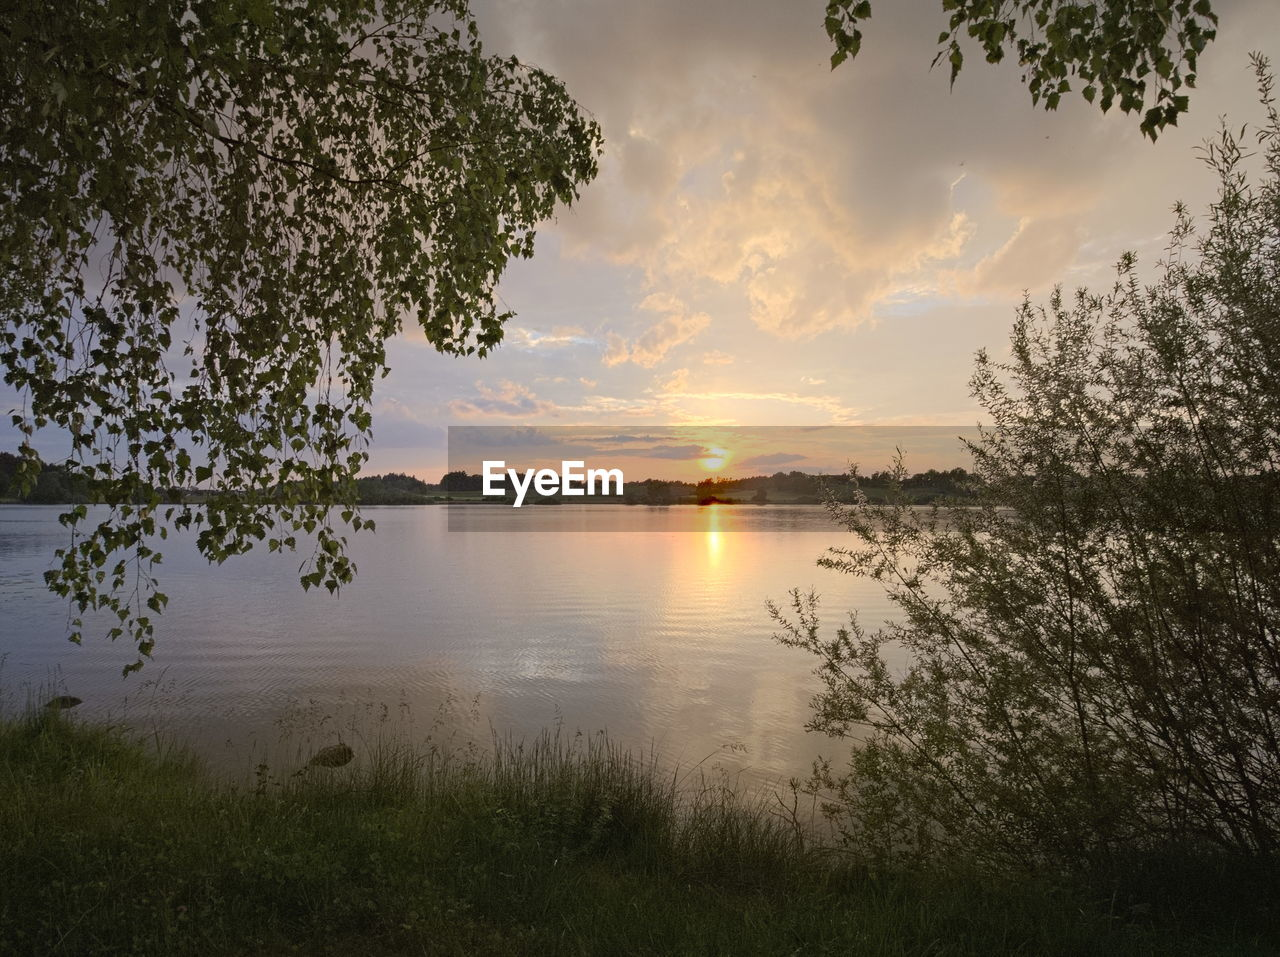 sky, tranquility, sunset, beauty in nature, plant, tranquil scene, water, scenics - nature, tree, cloud - sky, nature, reflection, lake, idyllic, no people, non-urban scene, growth, outdoors, land